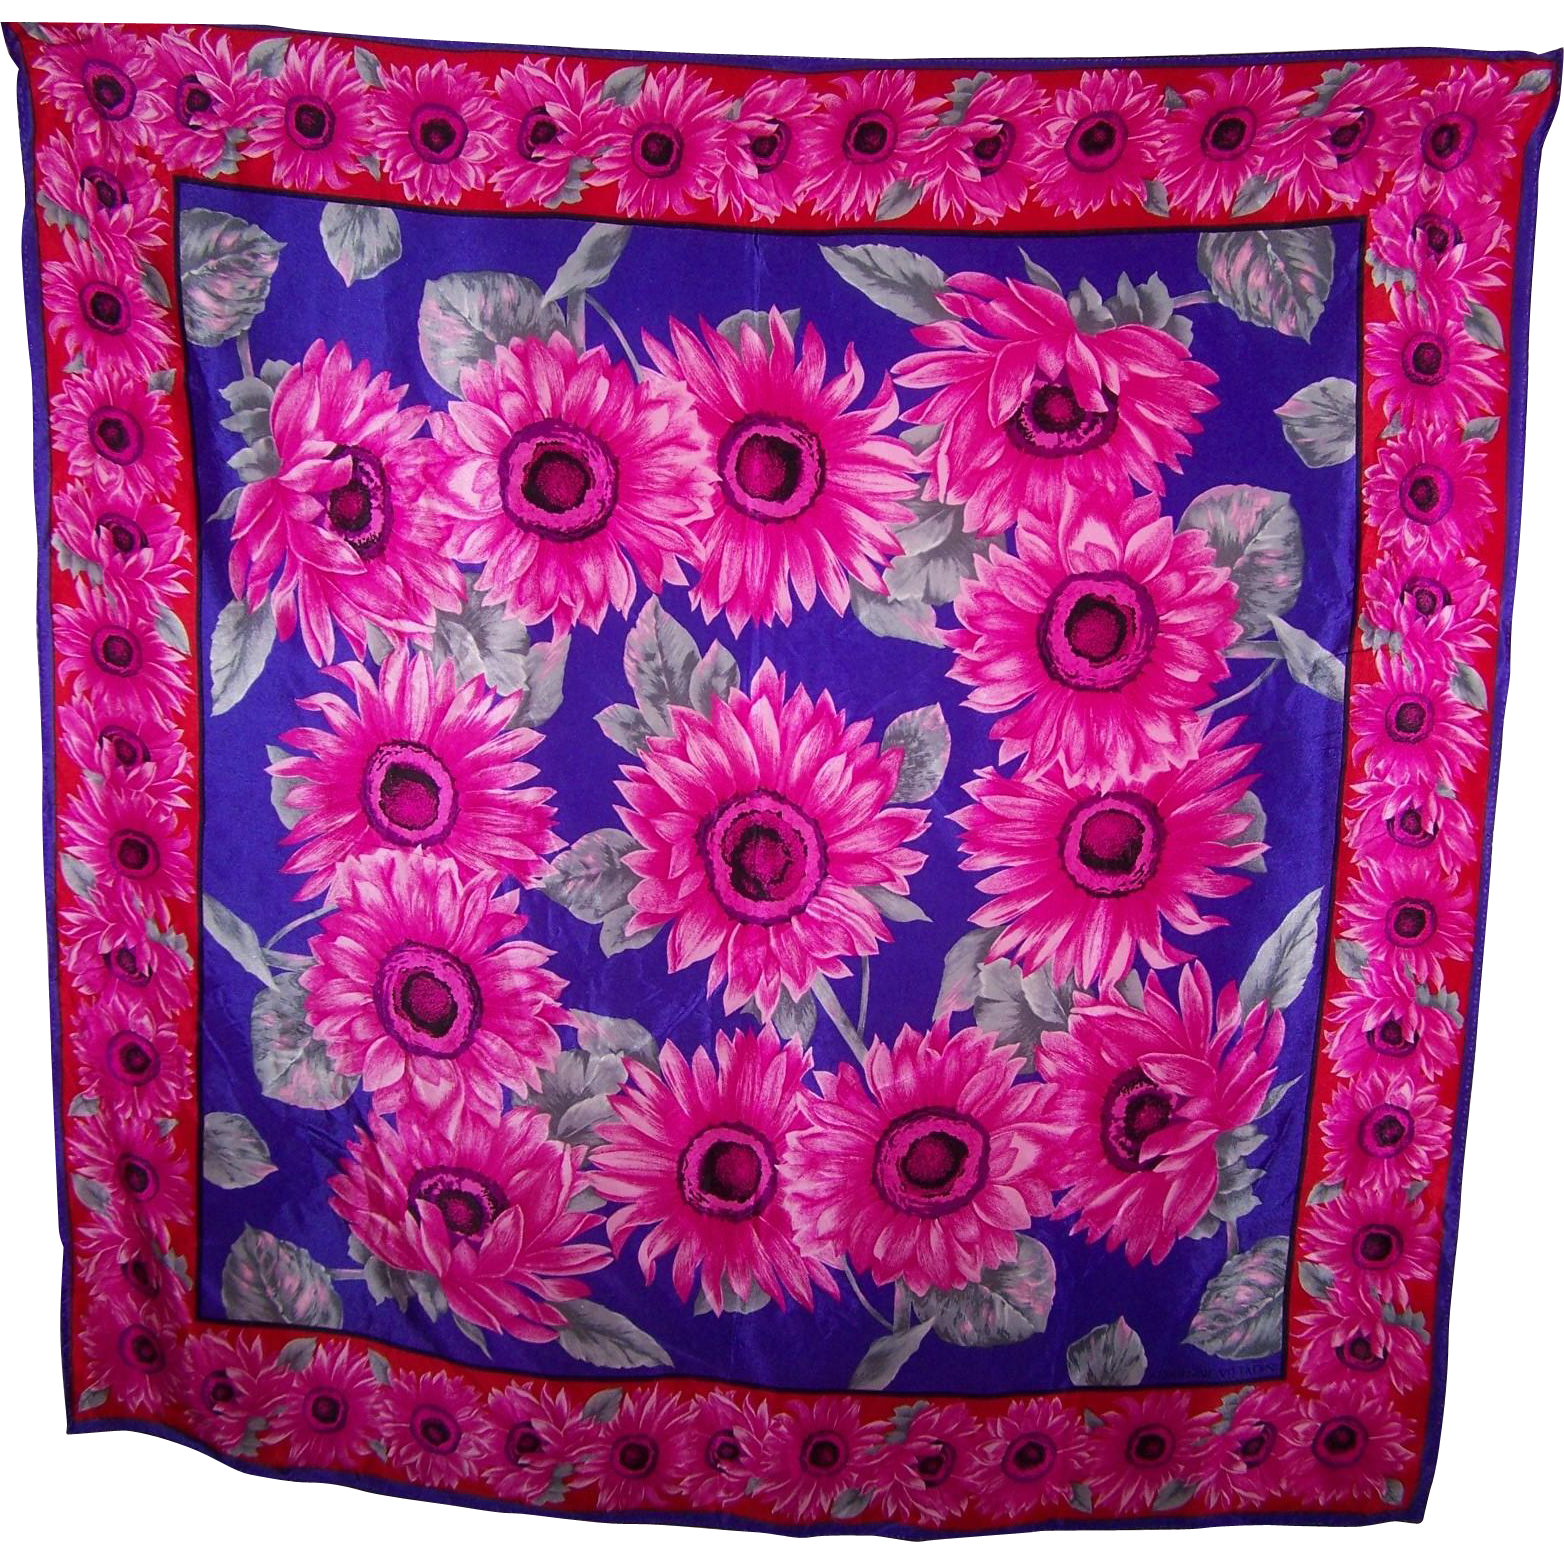 What A Pretty Pink Flower Pattern Designer Signed Adrienne Vittadini Silk Scarf Wearable ART